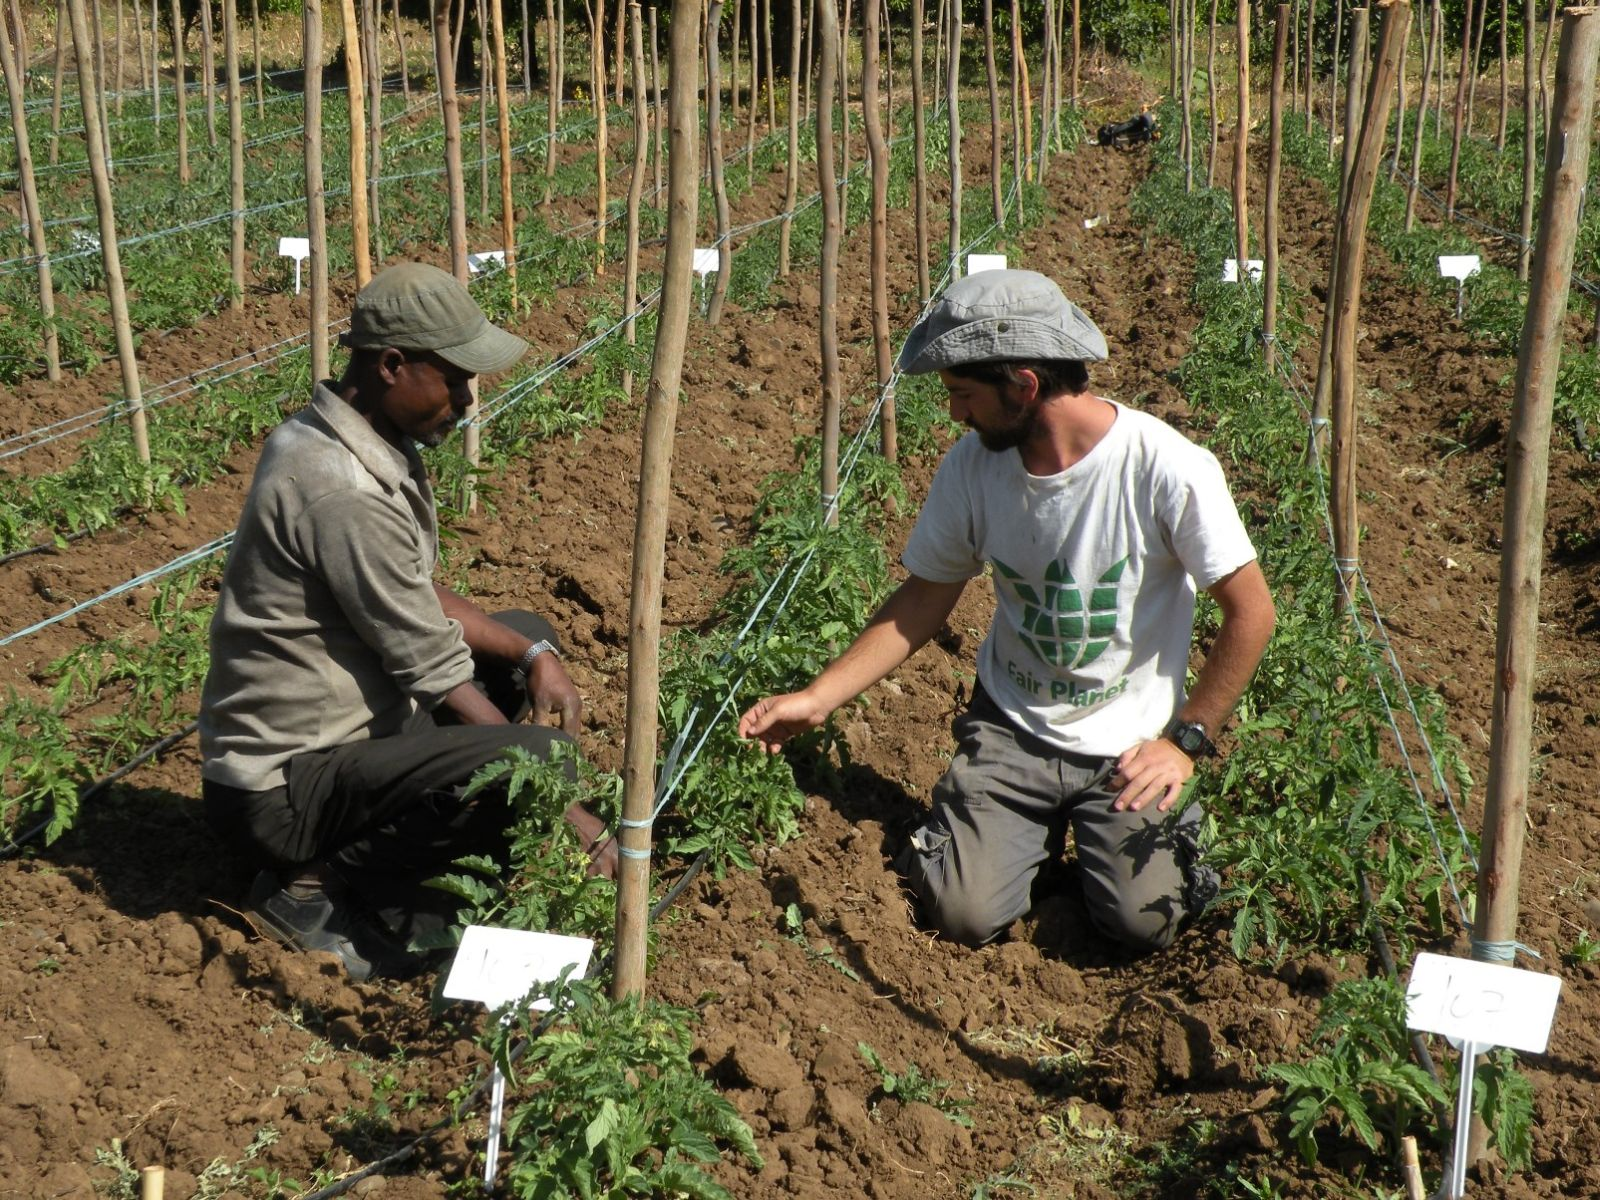 Fair Planet volunteers visit each participating farmer weekly to give advice on best practices. Photo: courtesy